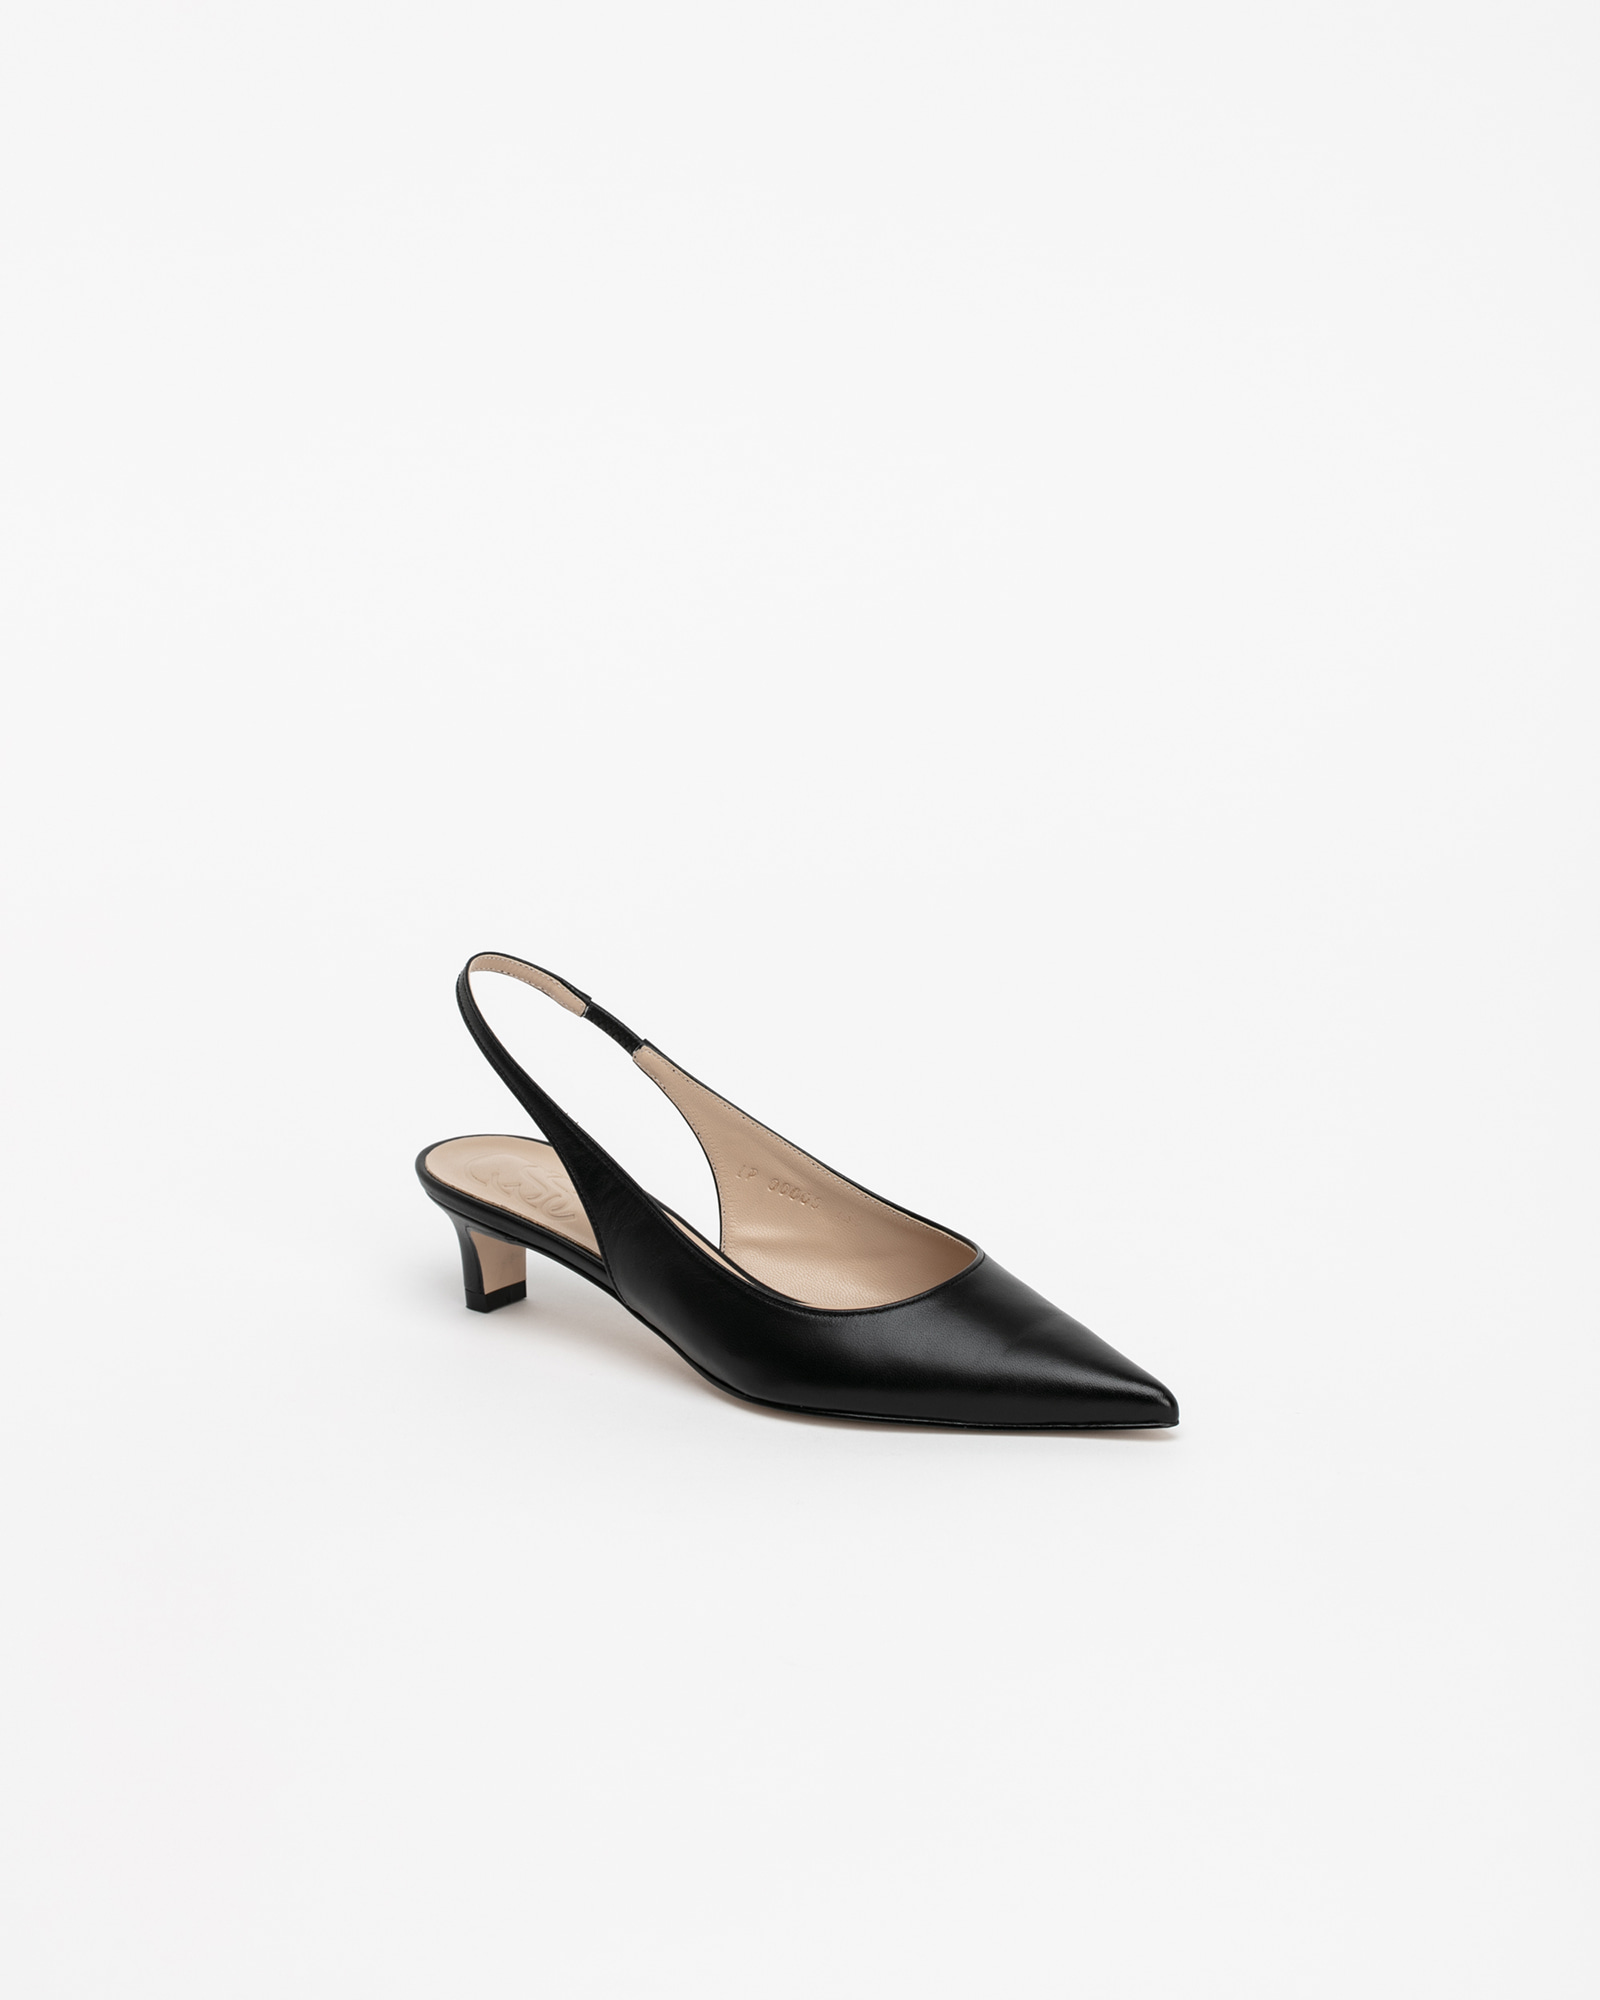 Philo Nouvelle Slingbacks in Black